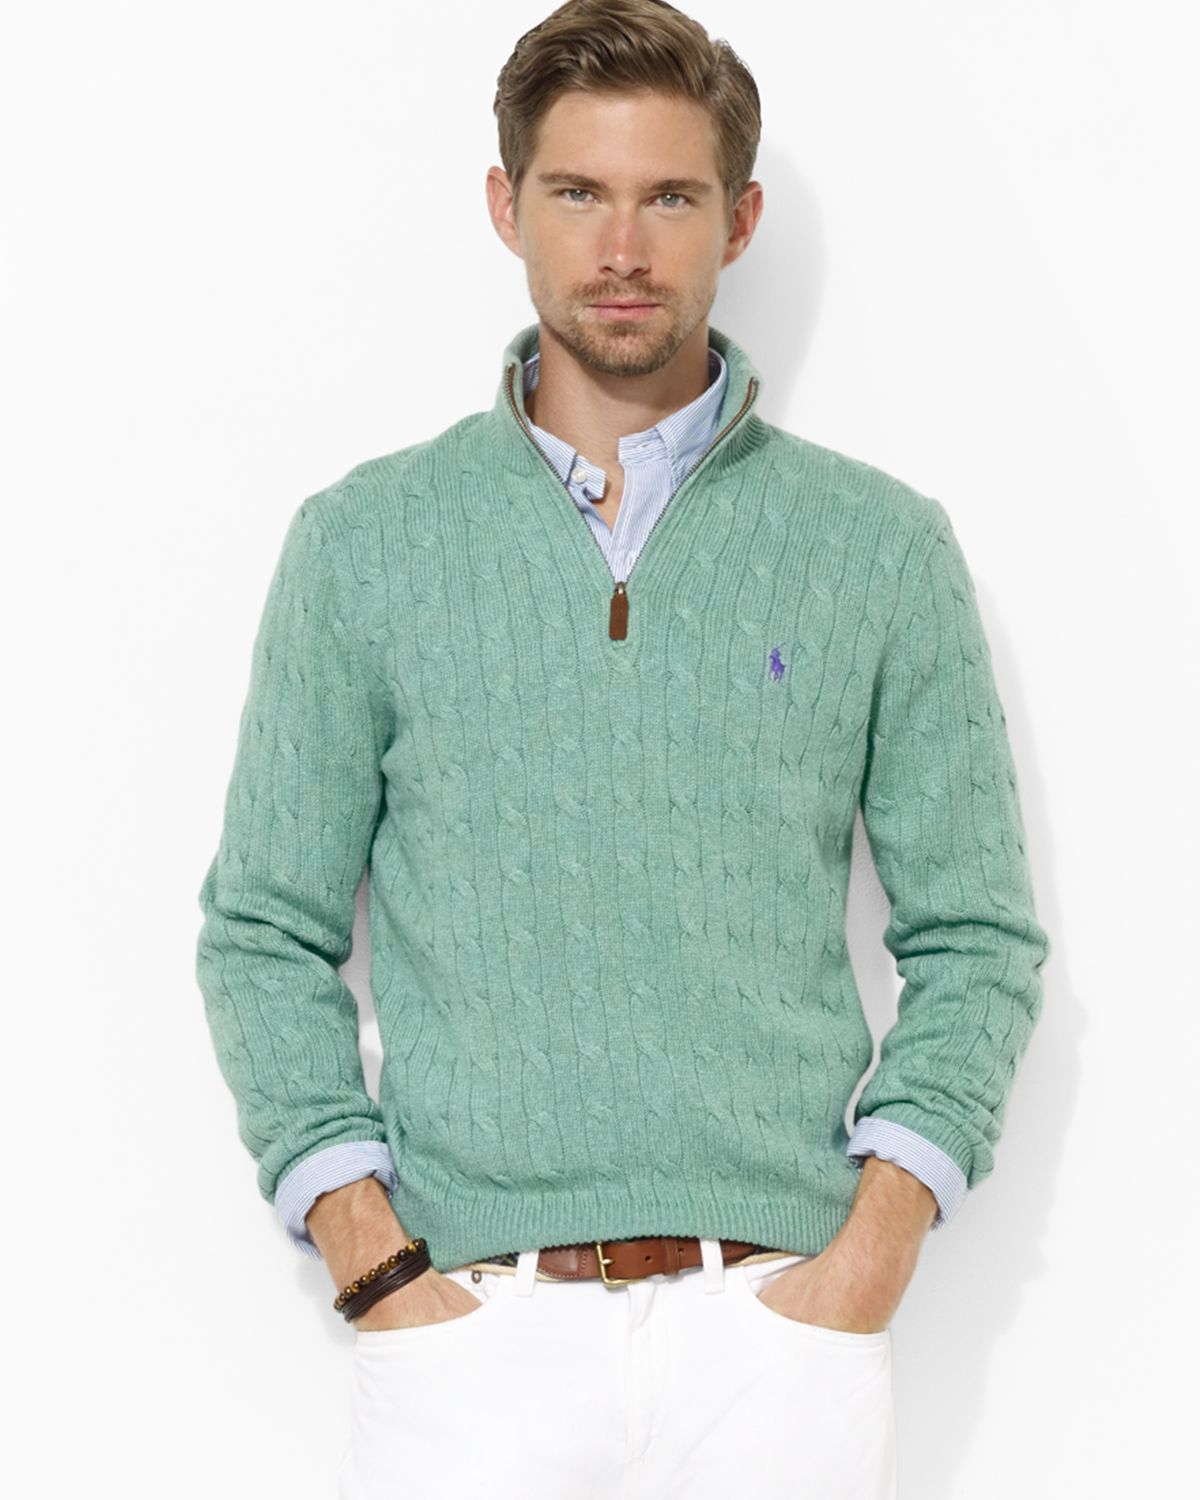 Ralph Lauren Polo Halfzip Cableknit Tussah Silk Sweater In